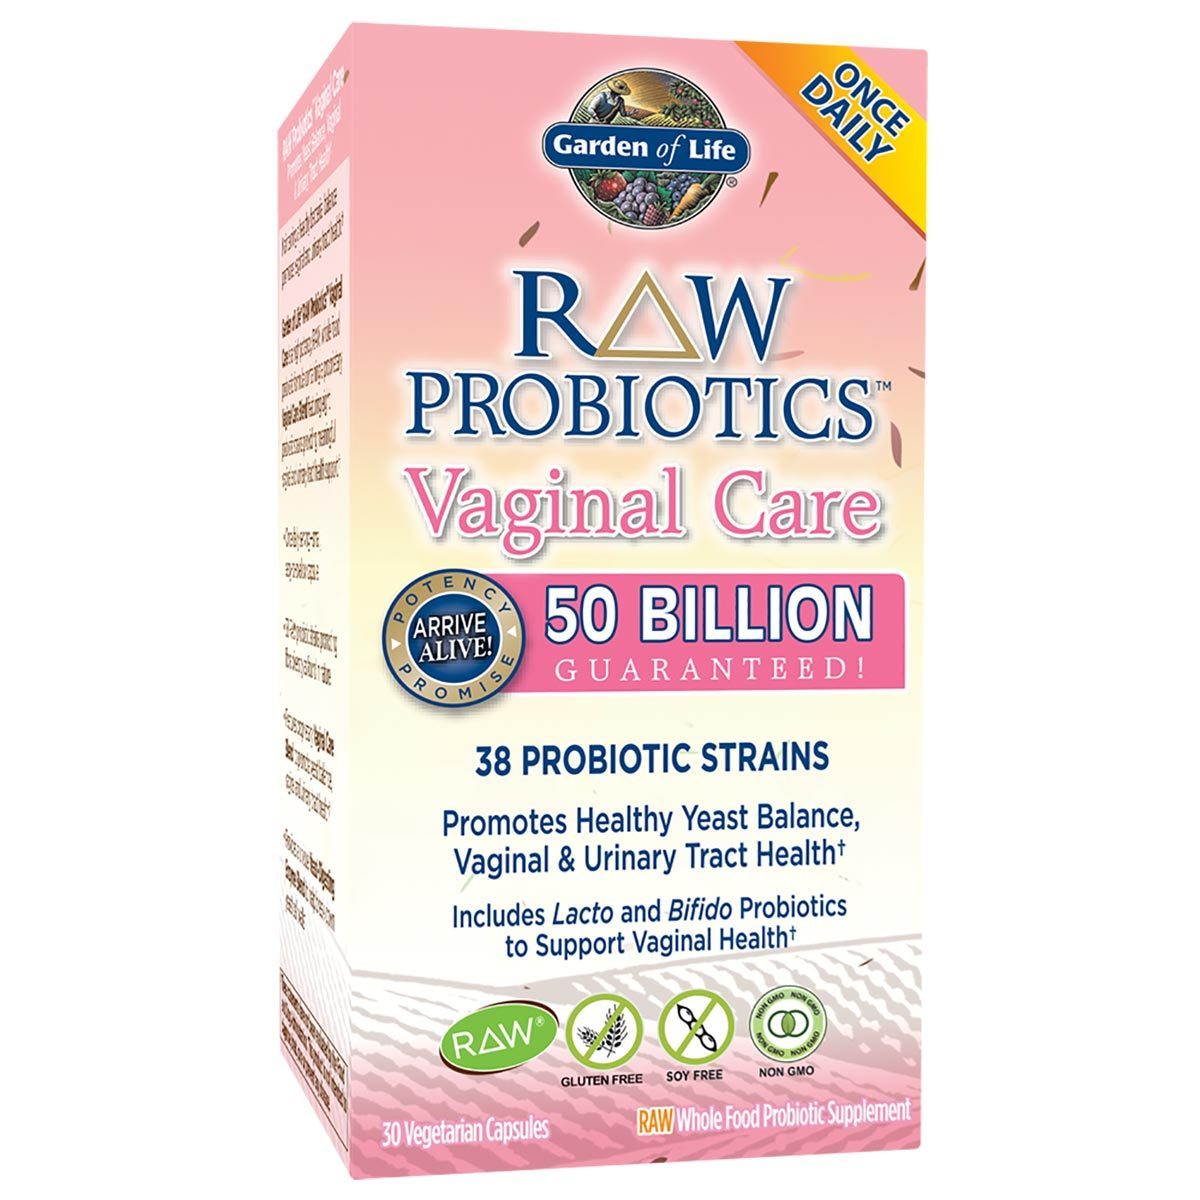 oz of raw by probiotics max women life day care grams garden